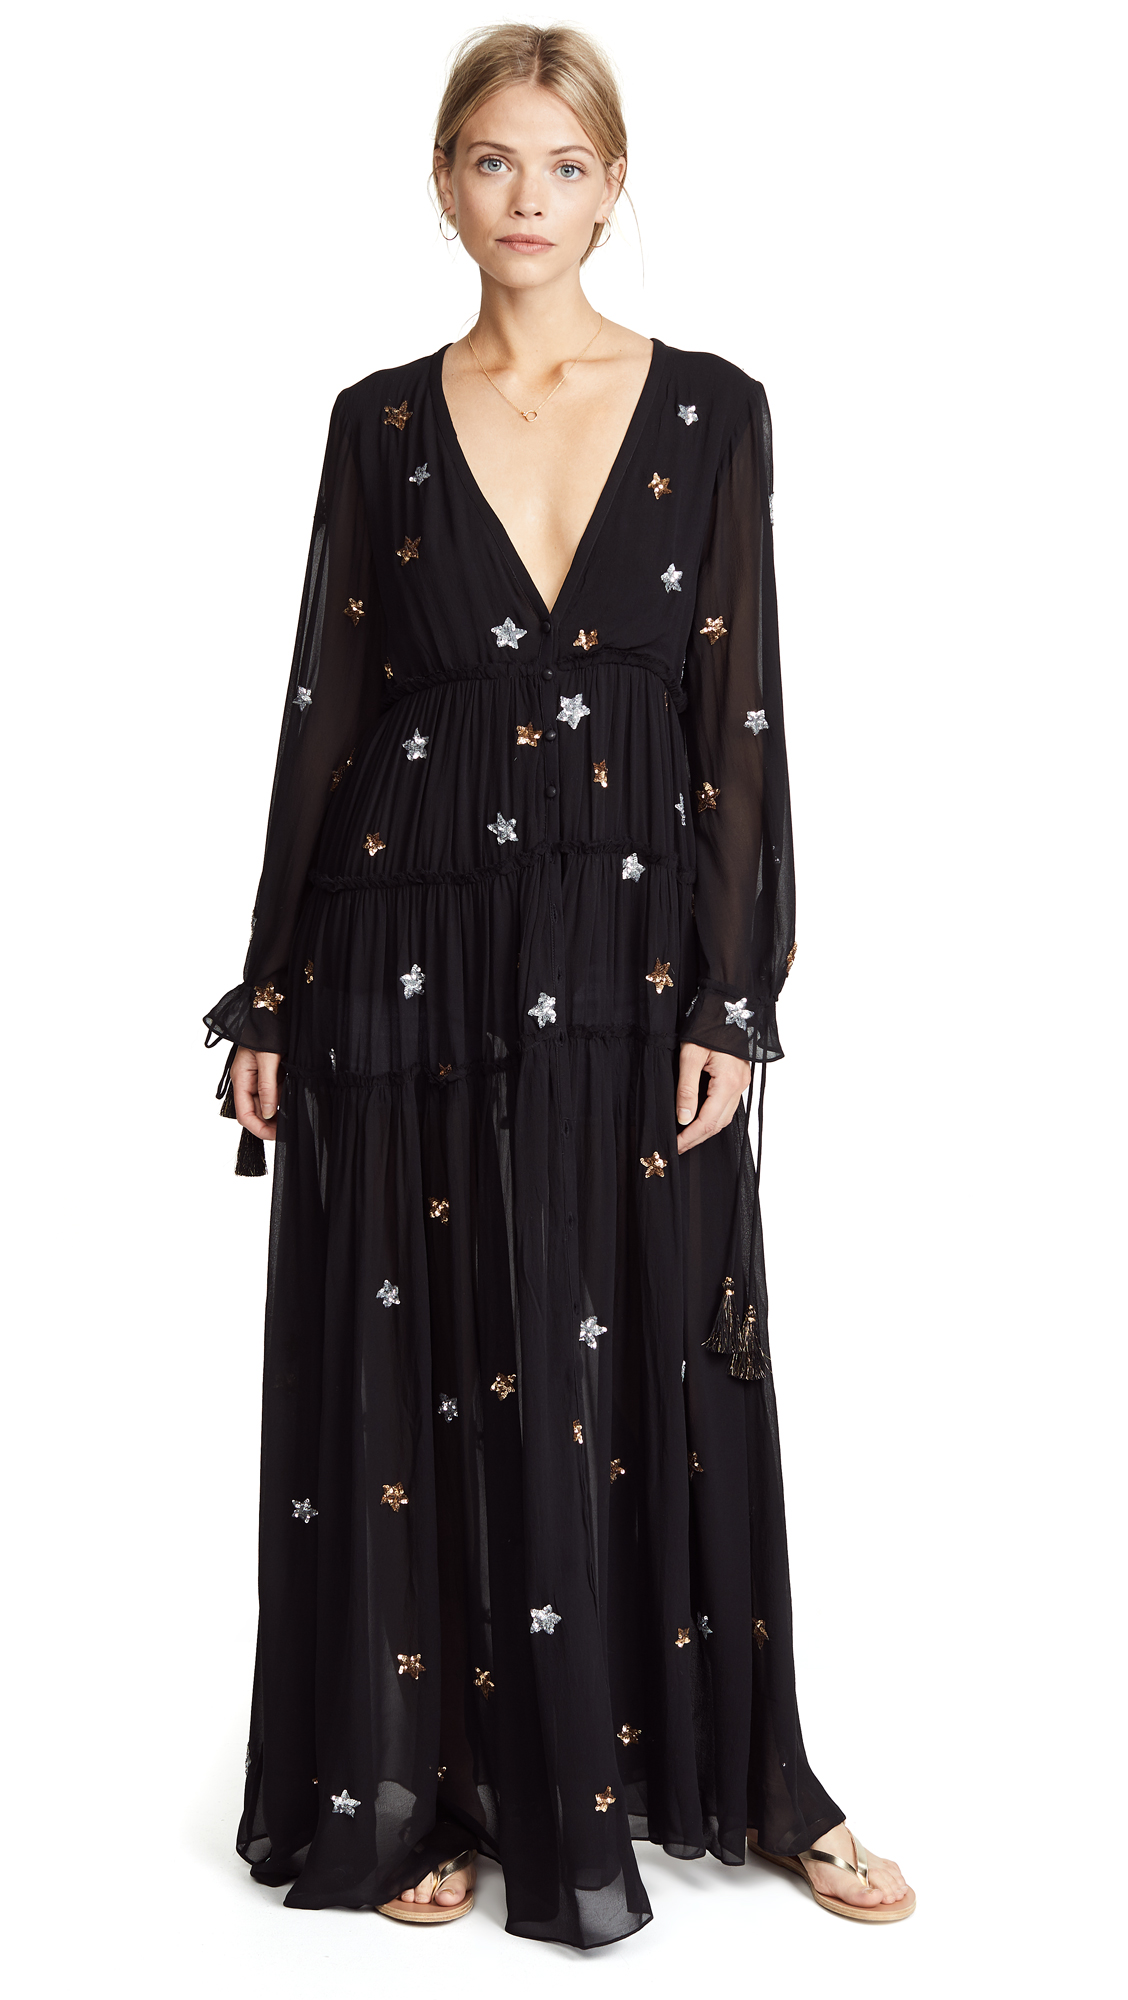 ASTRAL LONG DRESS